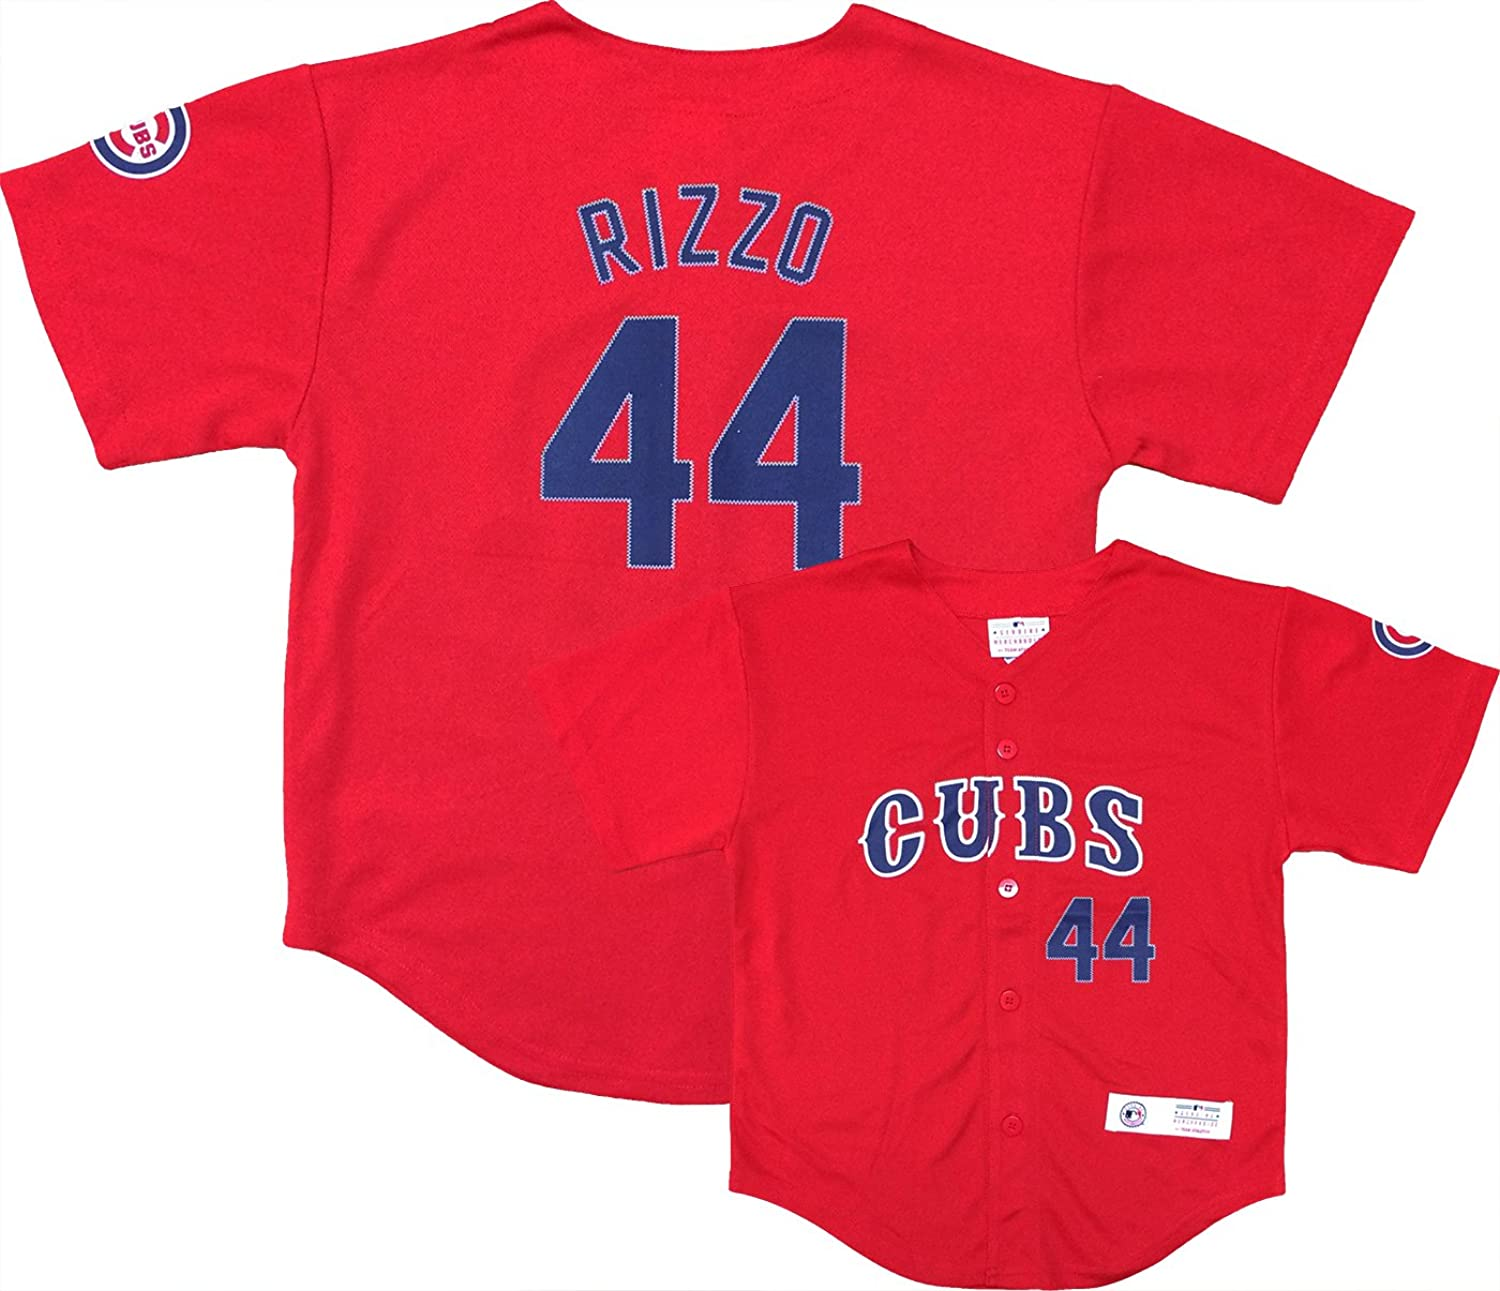 best quality e923e 257ae Anthony Rizzo Chicago Cubs #44 Red Youth Player Fashion ...